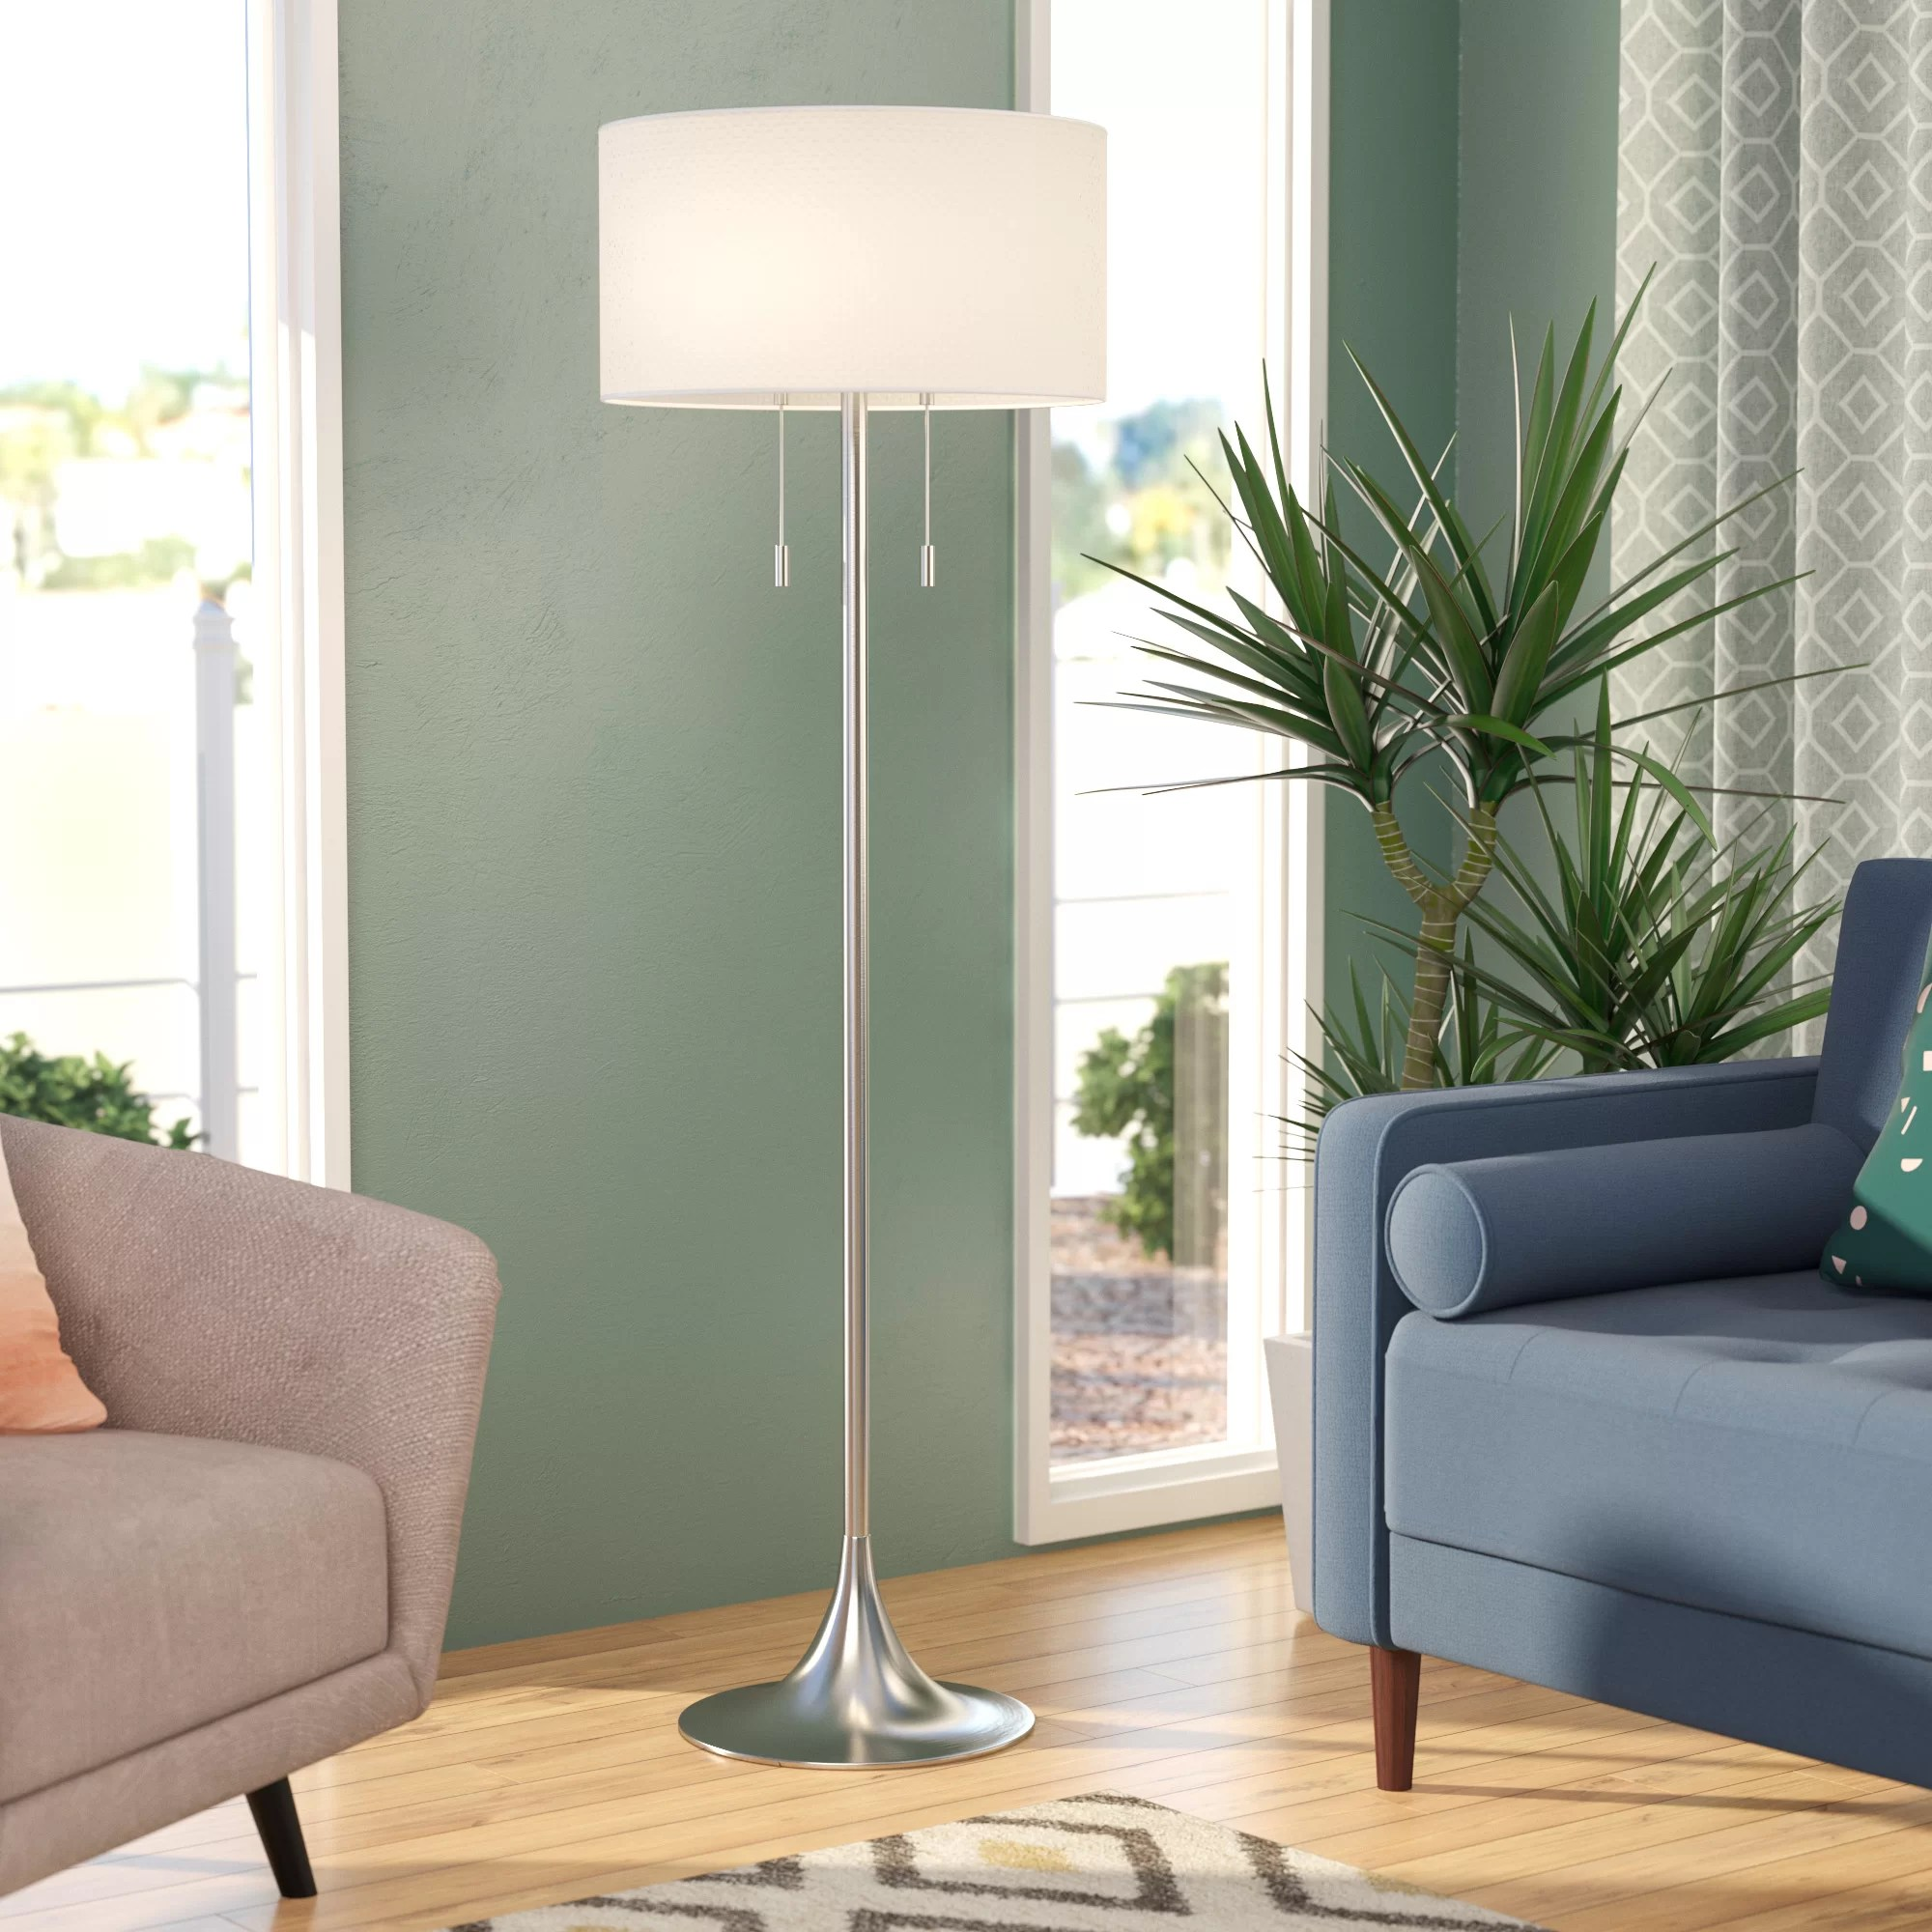 floor lamp living room good neutral paint color three posts morrisonville 61 reviews wayfair